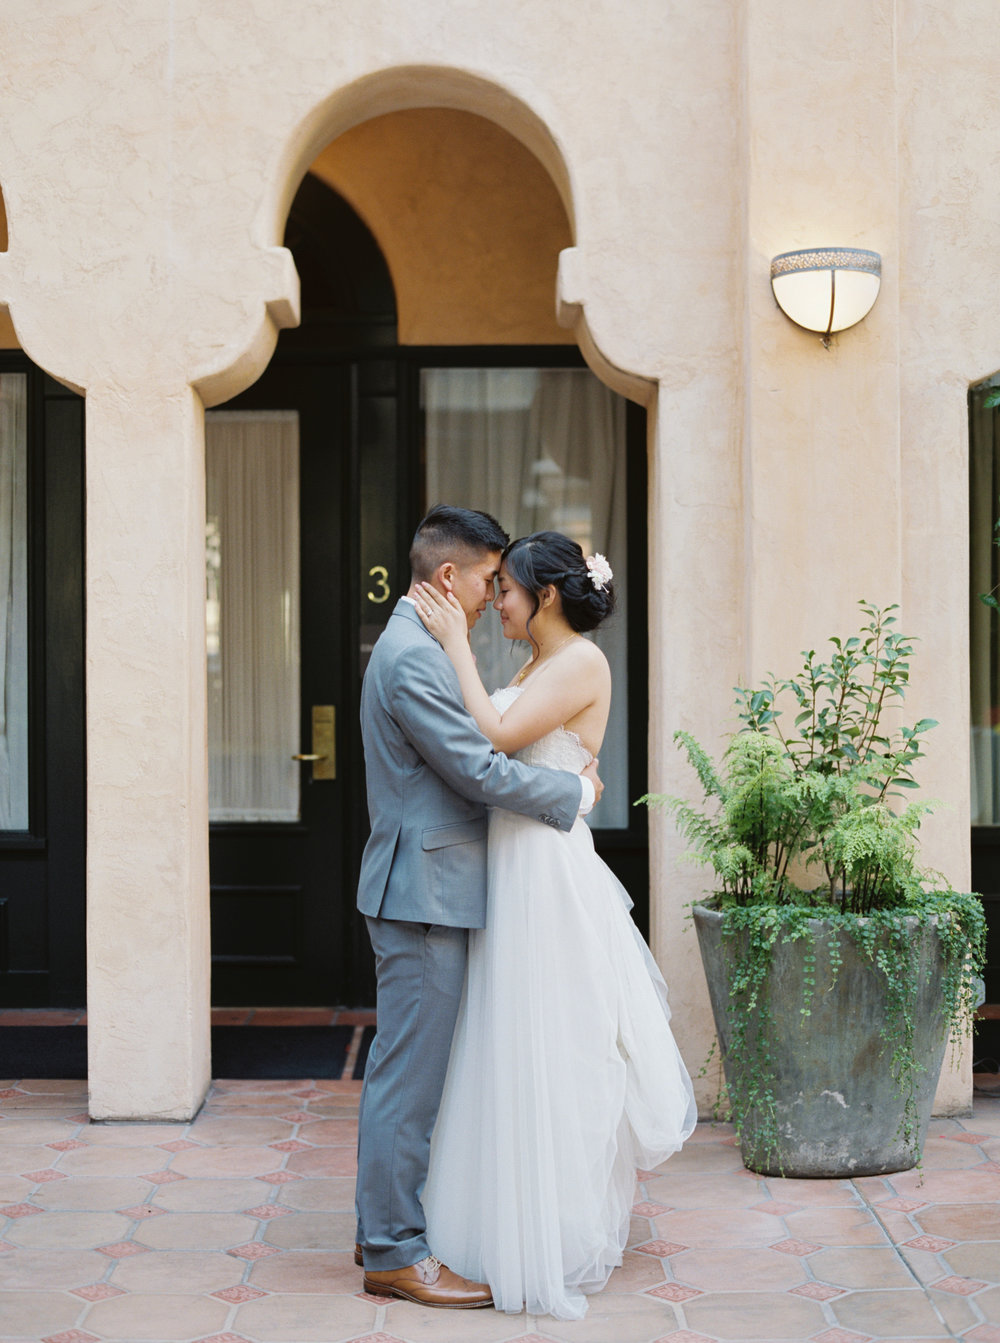 trynhphoto_wedding_photography_Standford_PaloAlto_SF_BayArea_Destination_OC_HA-26.jpg